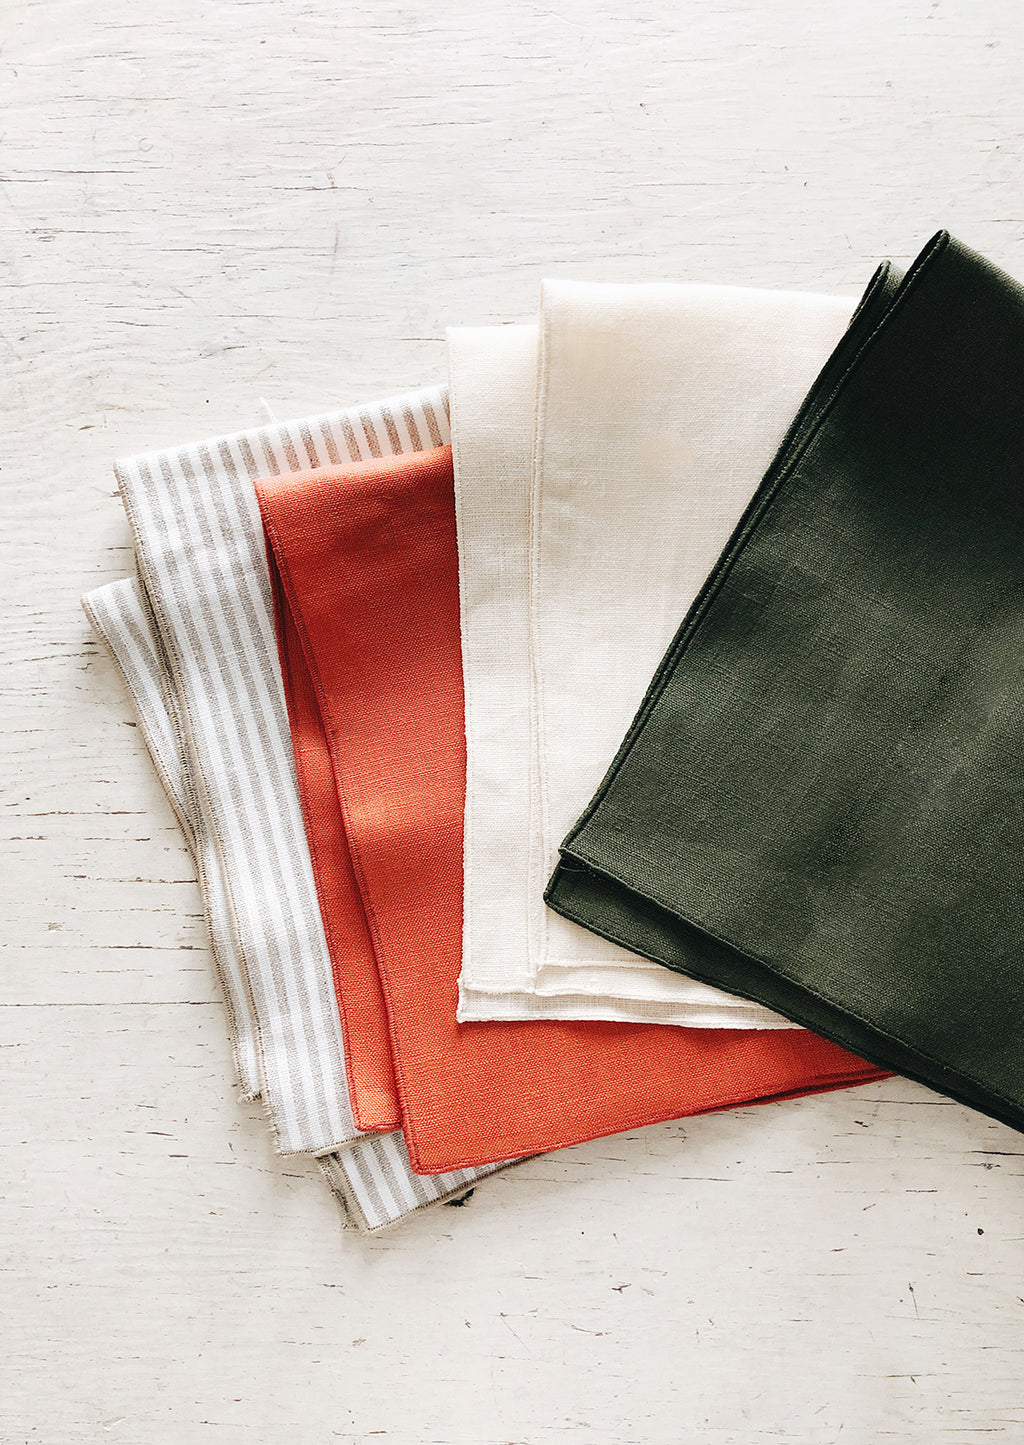 Tomato: Linen Napkins splayed out in an array of colors.